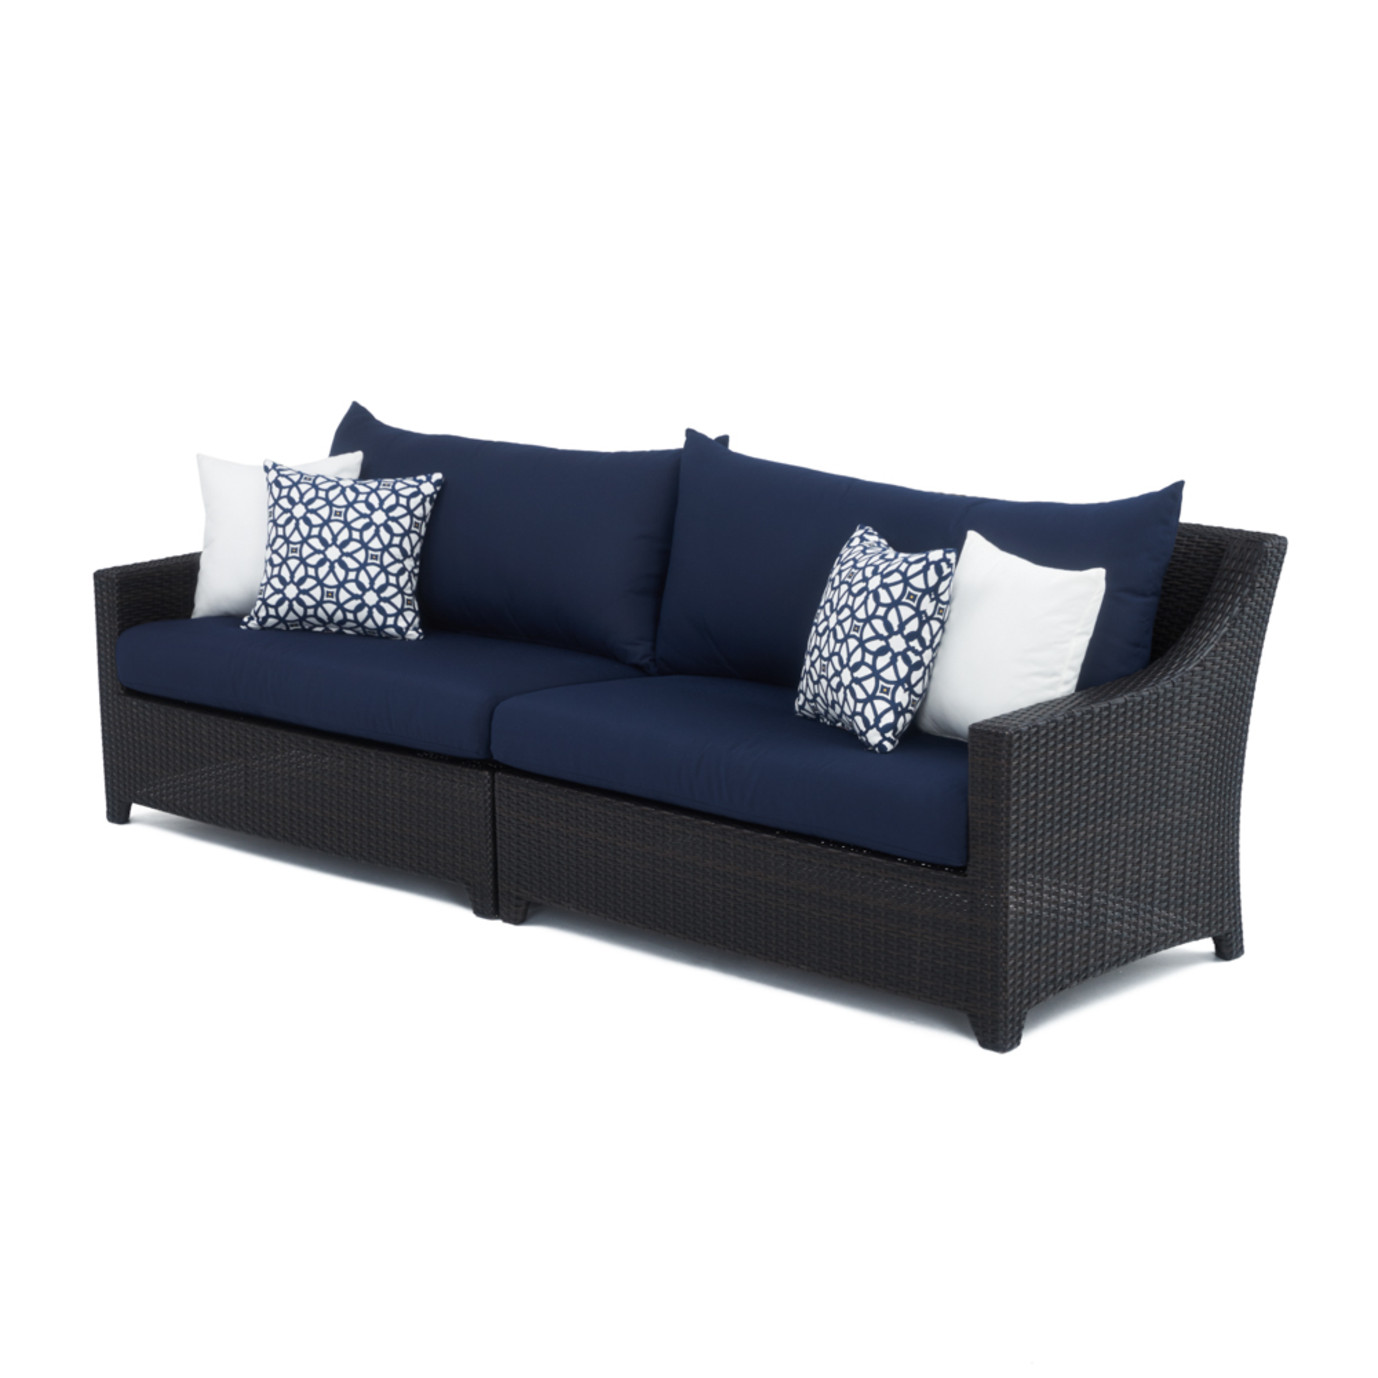 Deco™ Sofa - Navy Blue